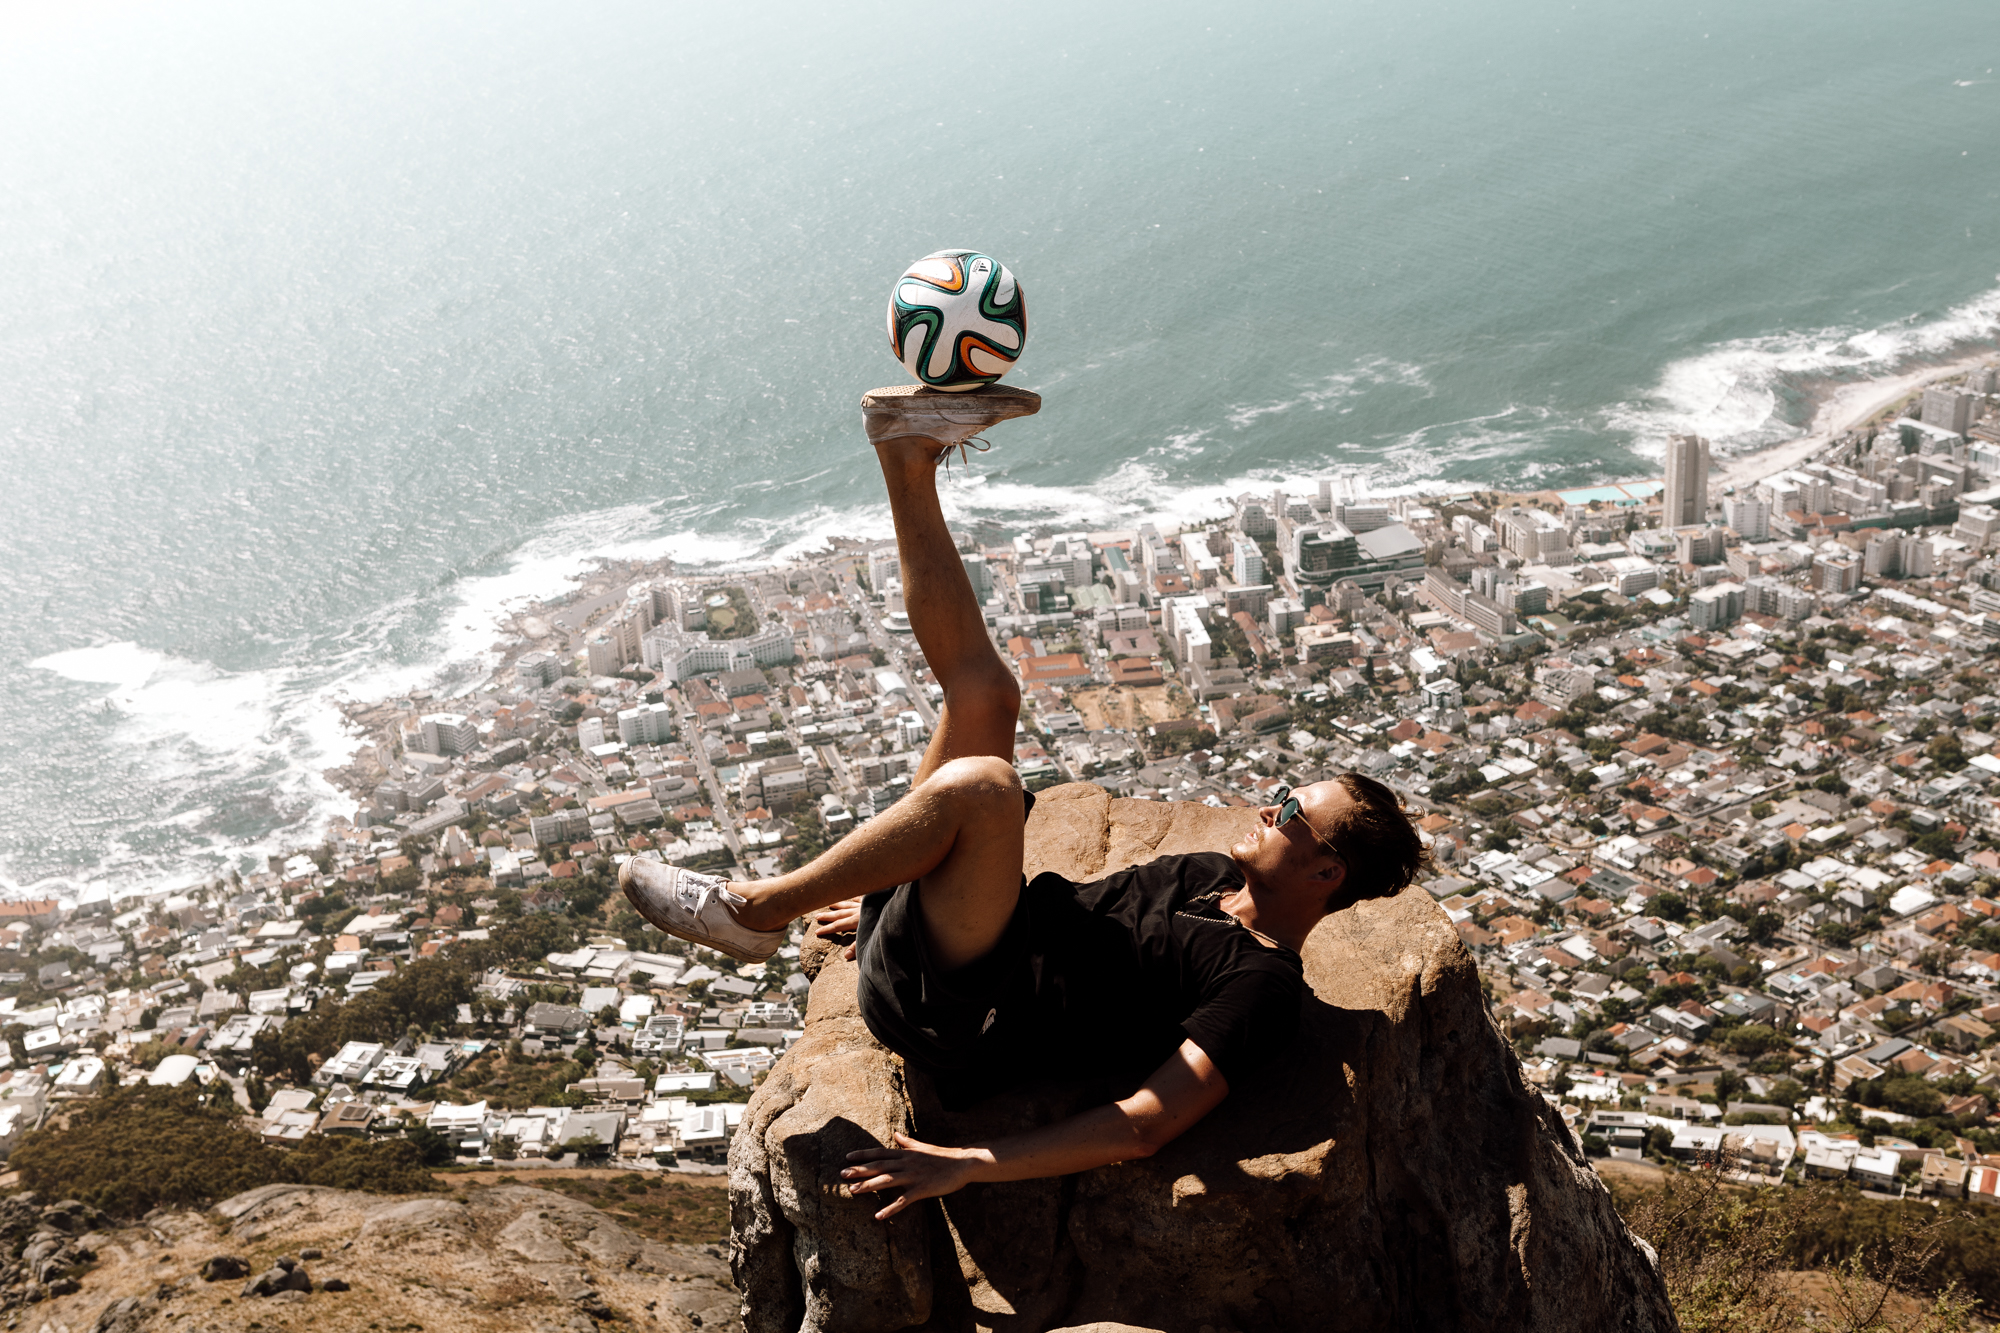 Football Freestyle Trick | CAPE TOWN